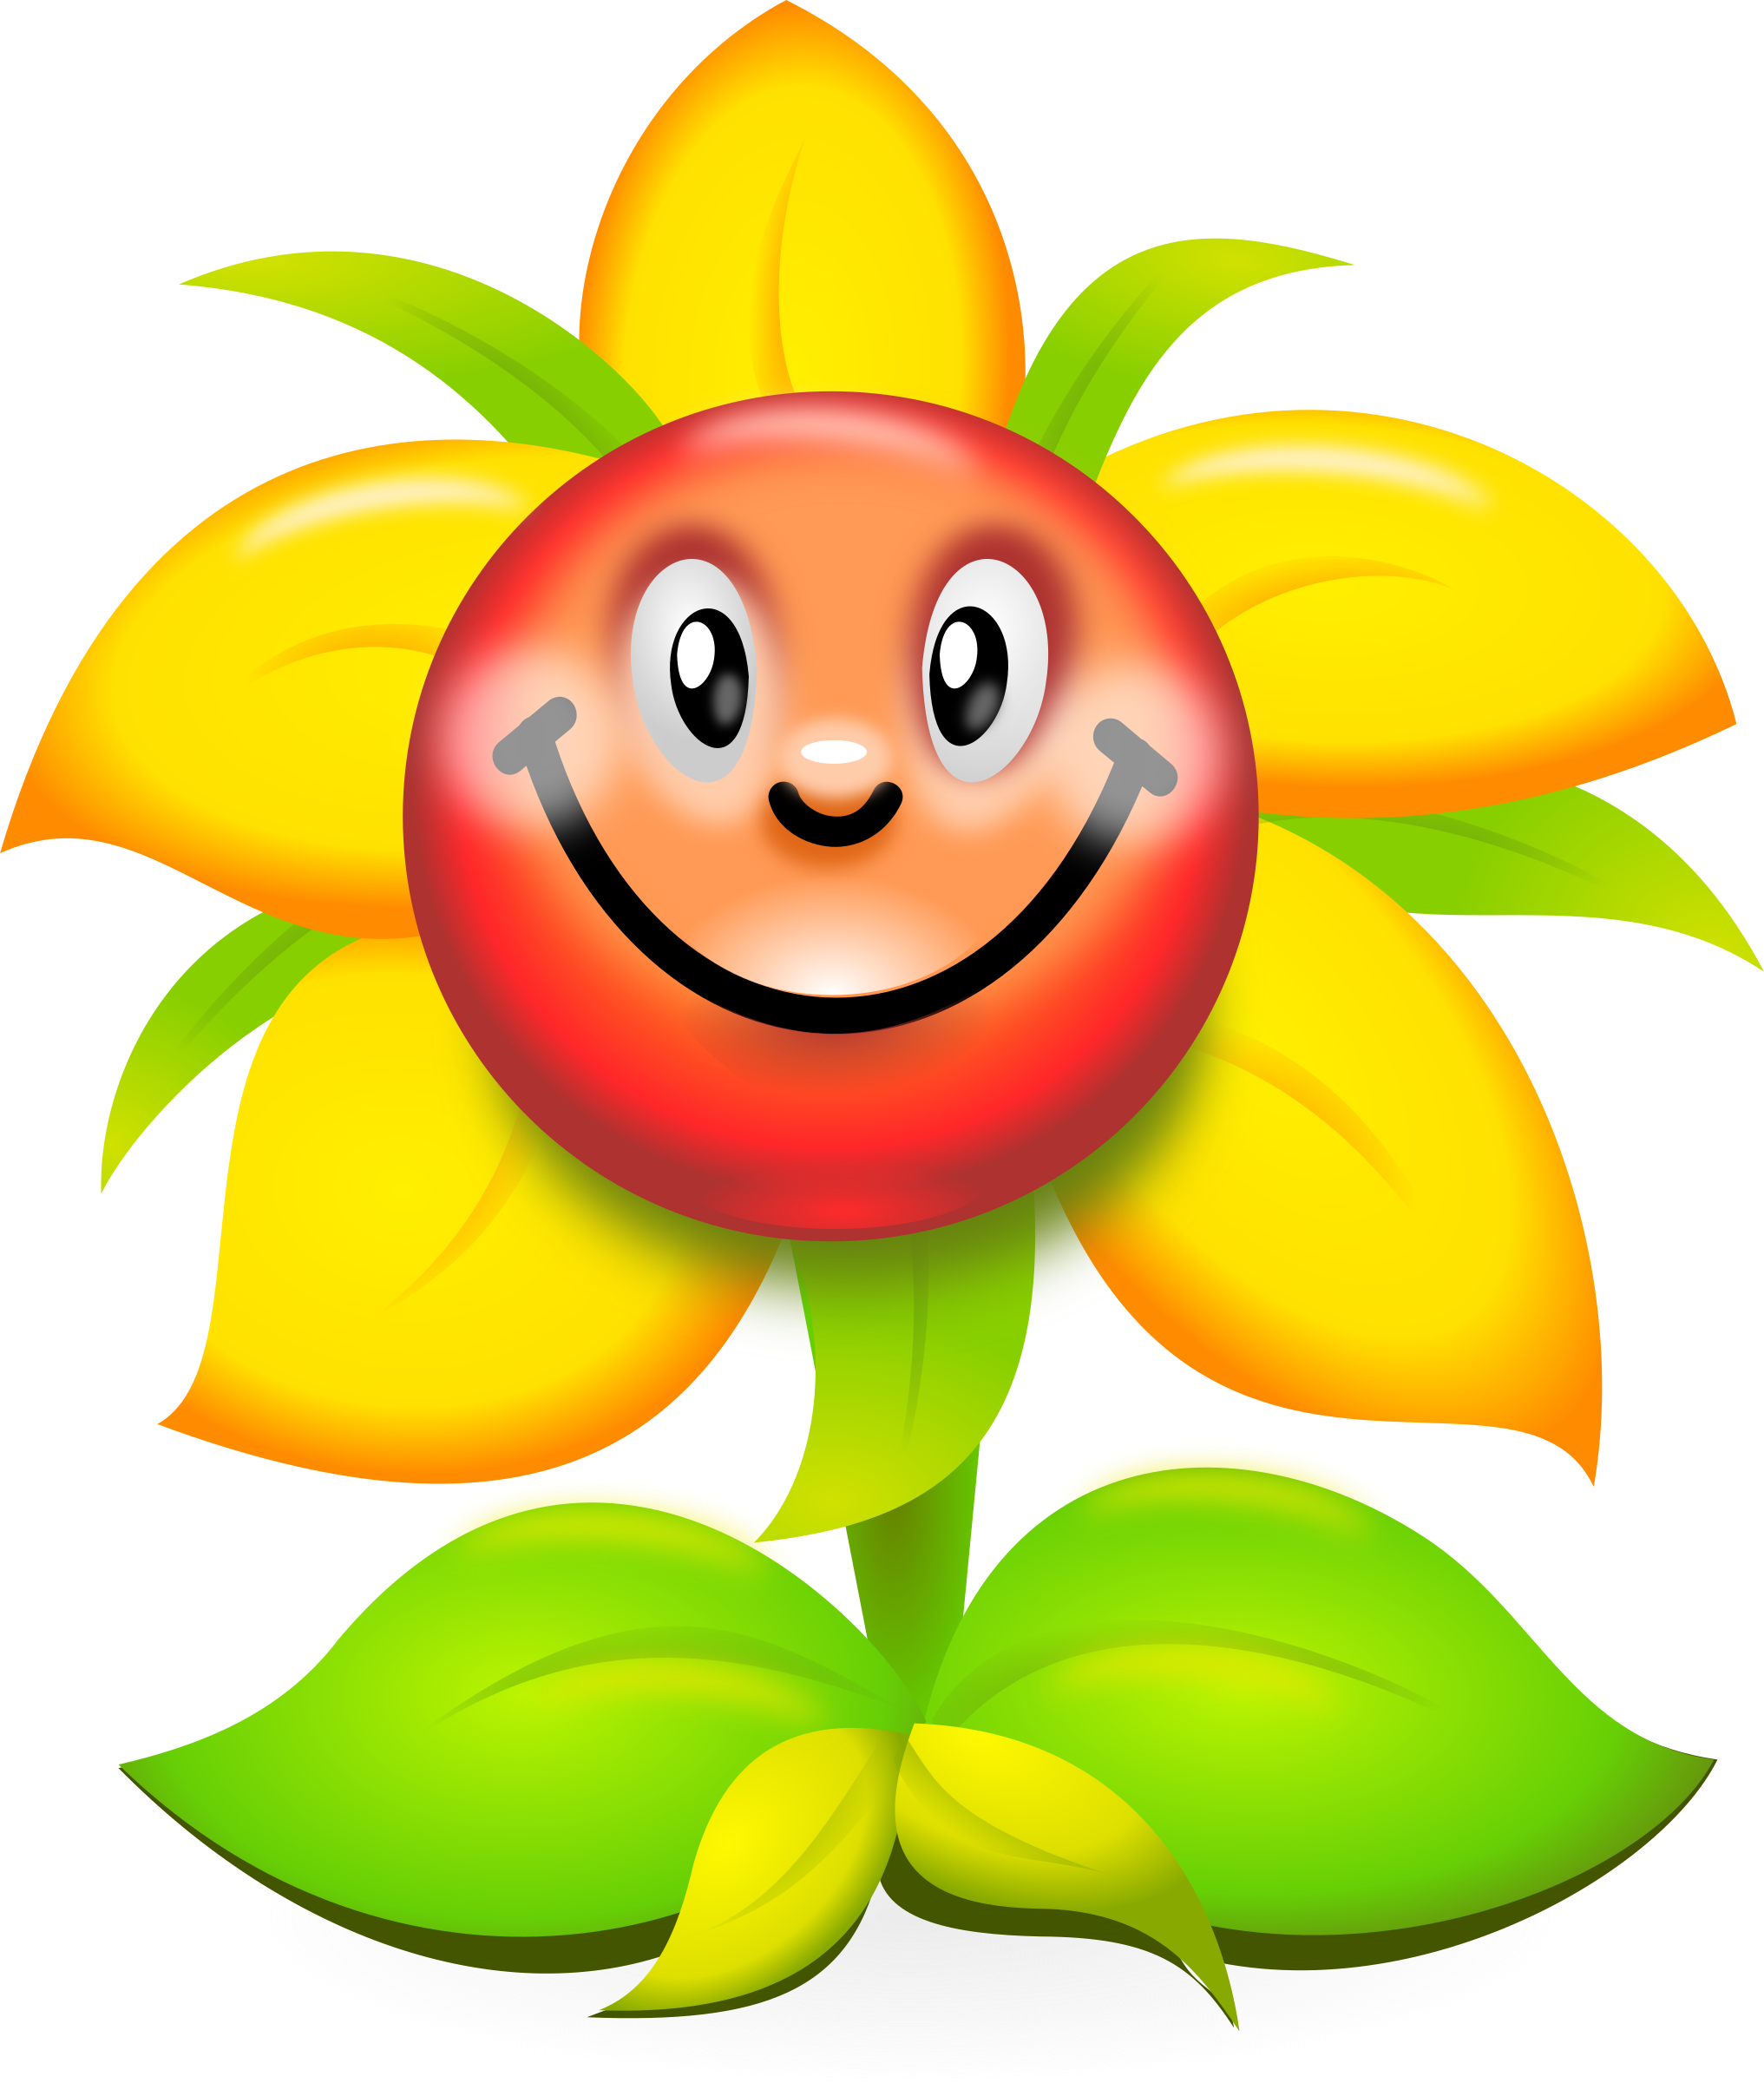 Flower Clipart Cartoon Free Download Best Flower Clipart Cartoon